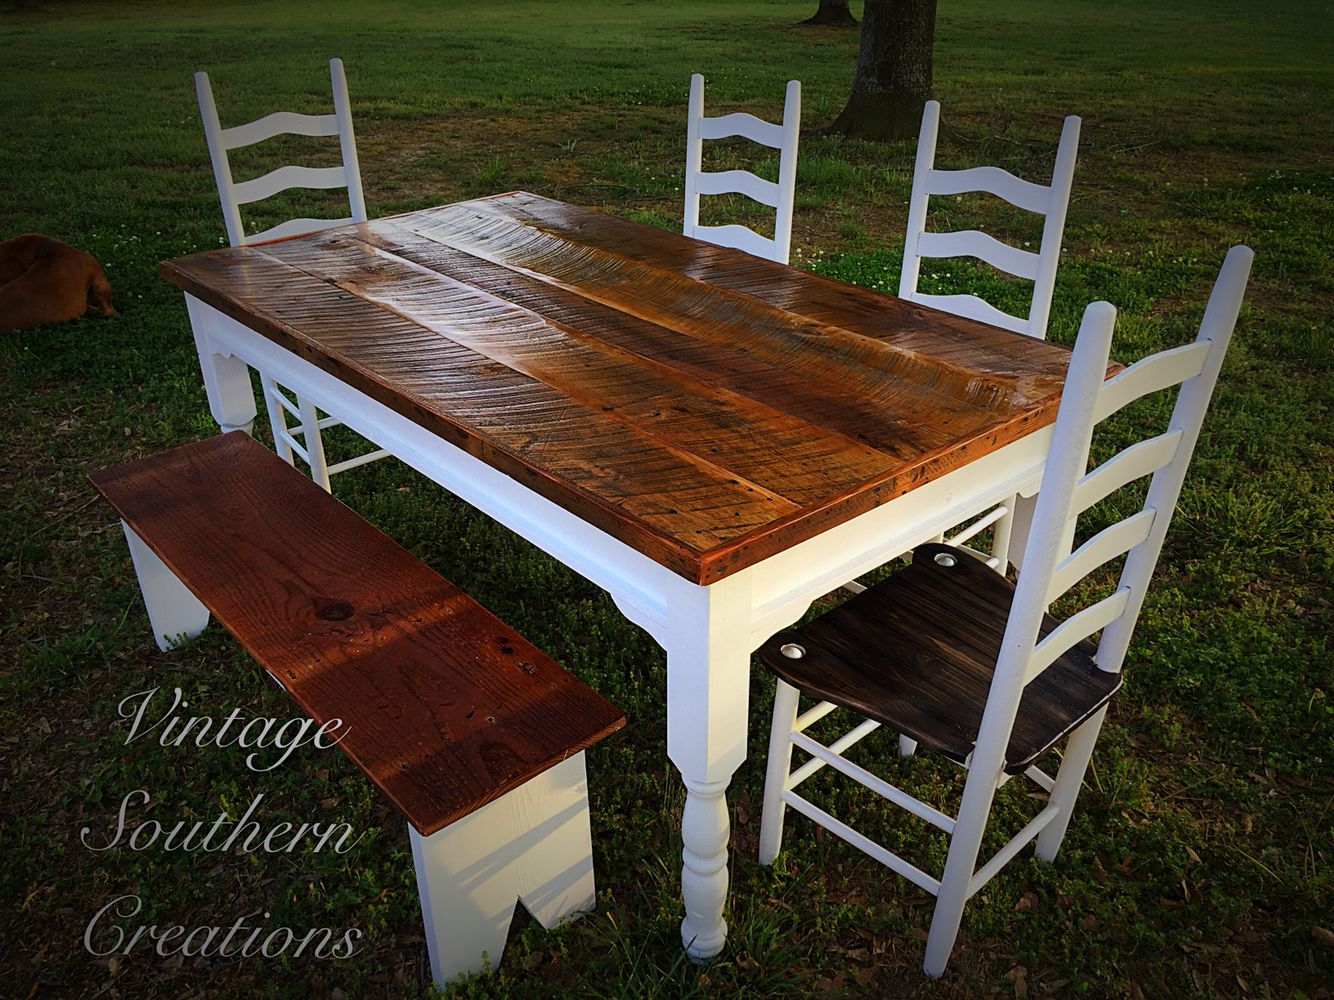 Farmhouse dining set by vintage southern creations